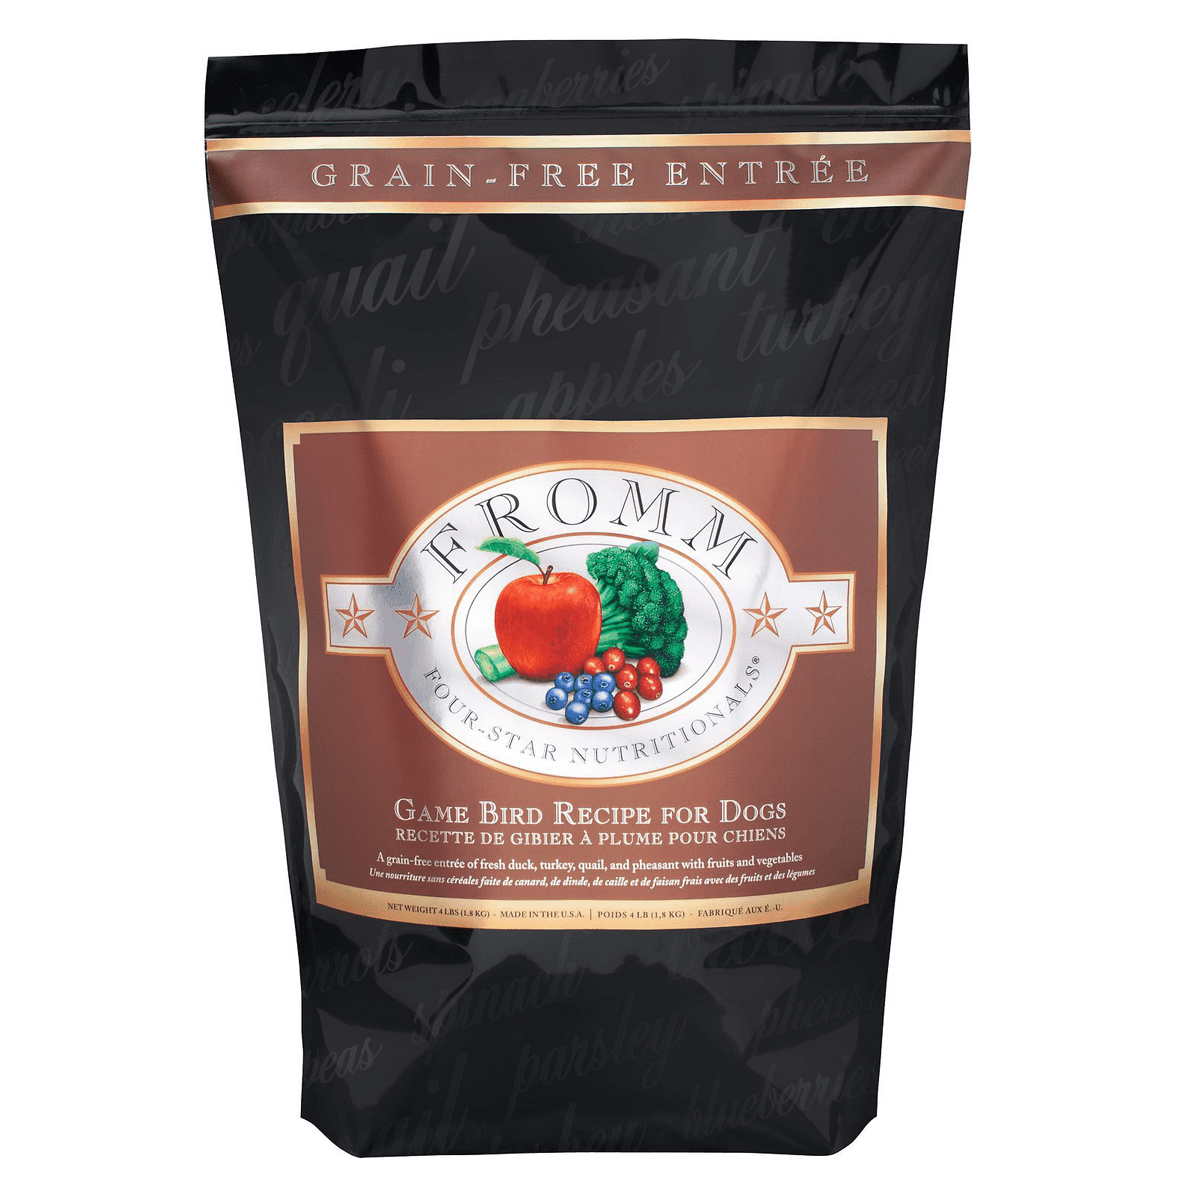 fromm-dog-food - PAWSitively Natural Pet Food & Supplies